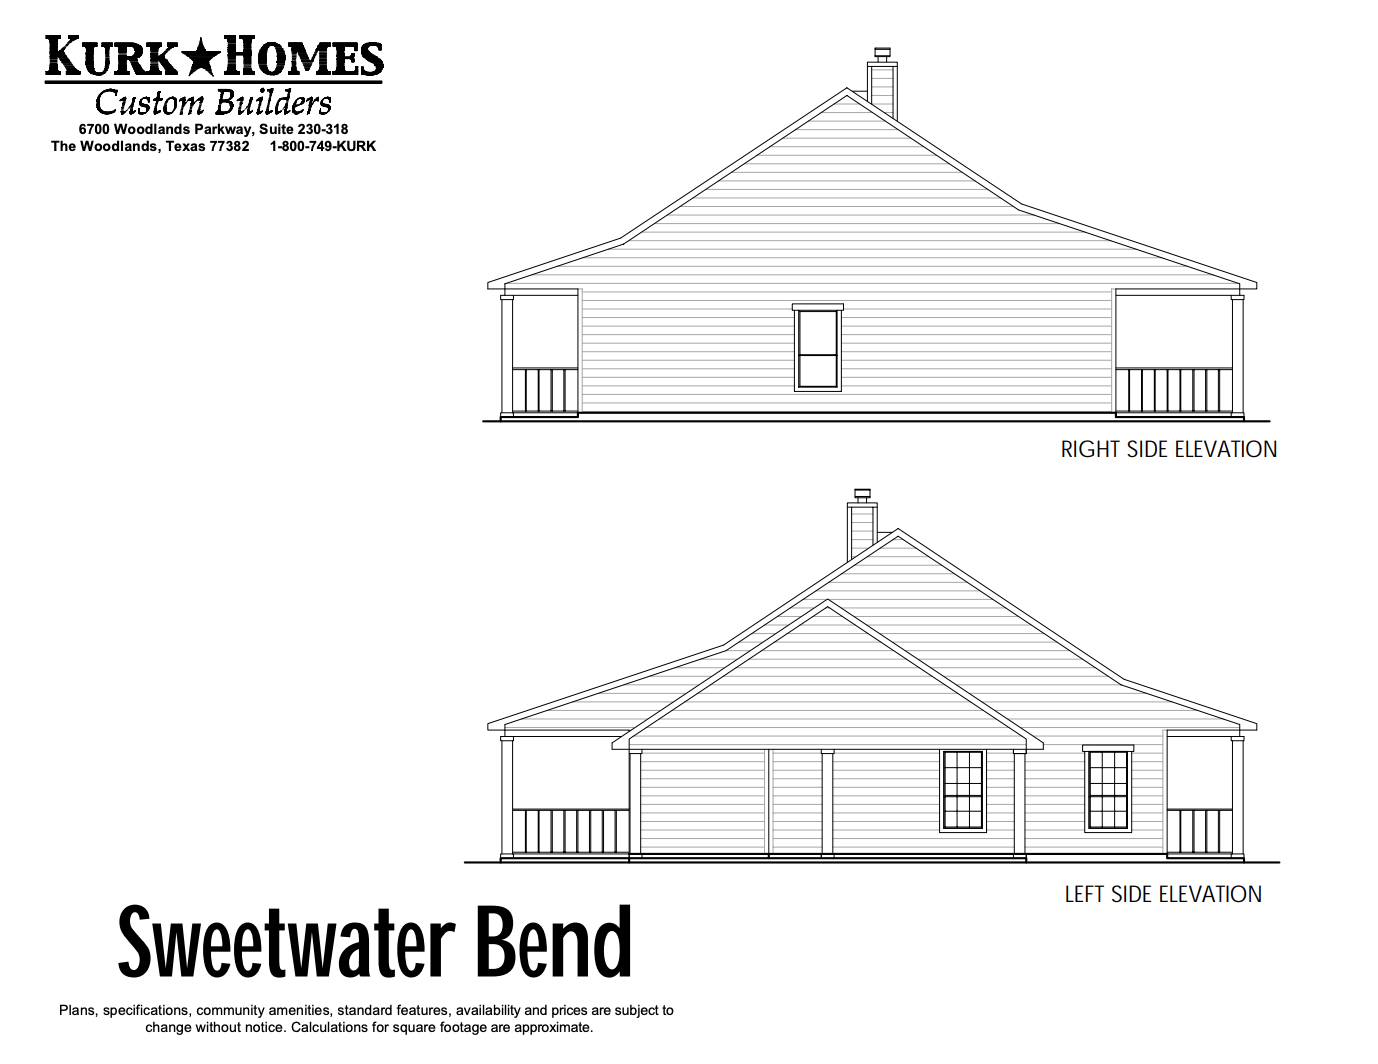 Sweetwater Bend - Side Elevation